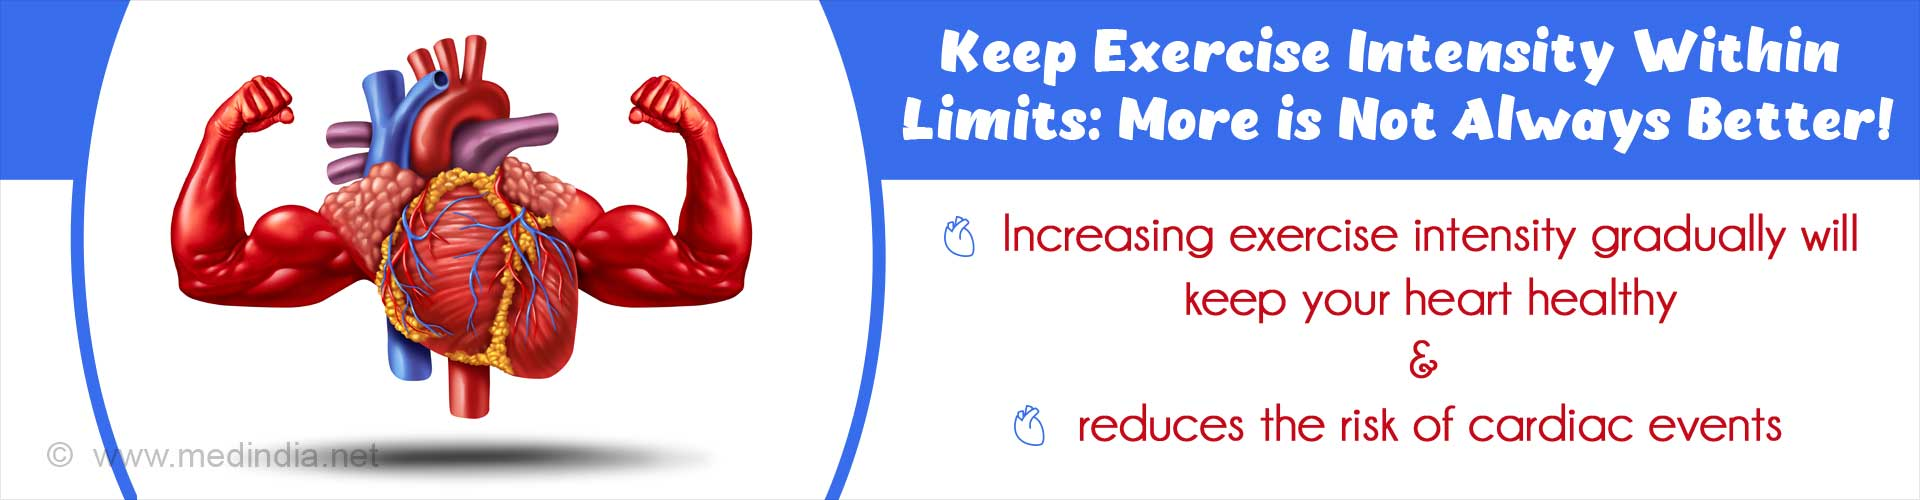 Slowly Increasing Exercise Intensity is Good for the Heart